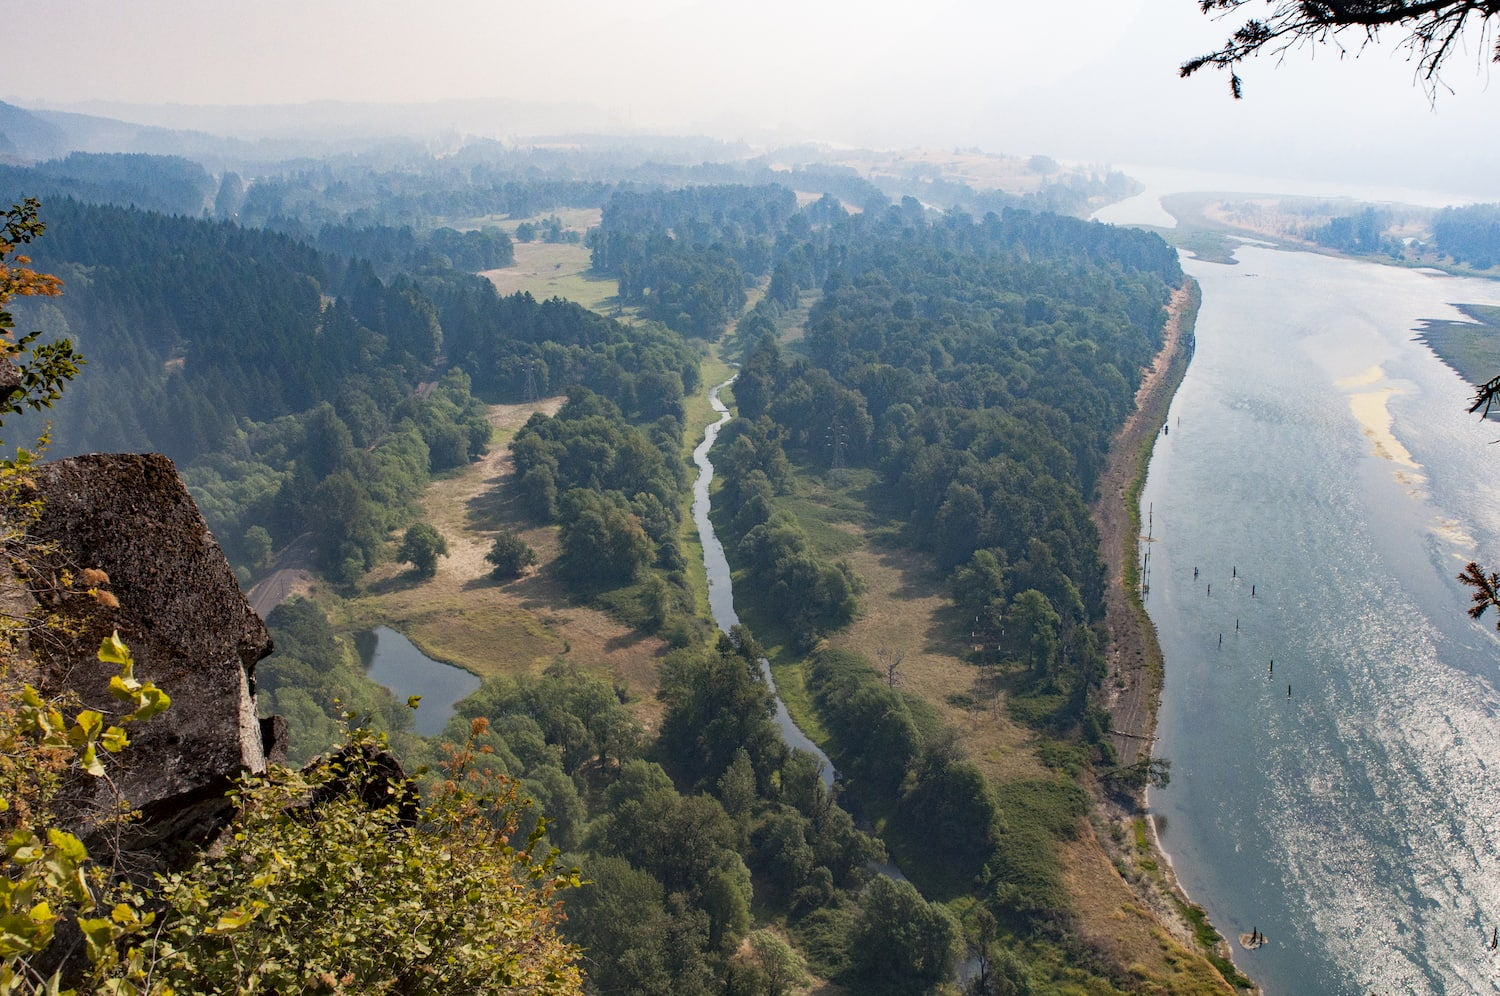 a view of the Columbia River from the top of Beacon Rock